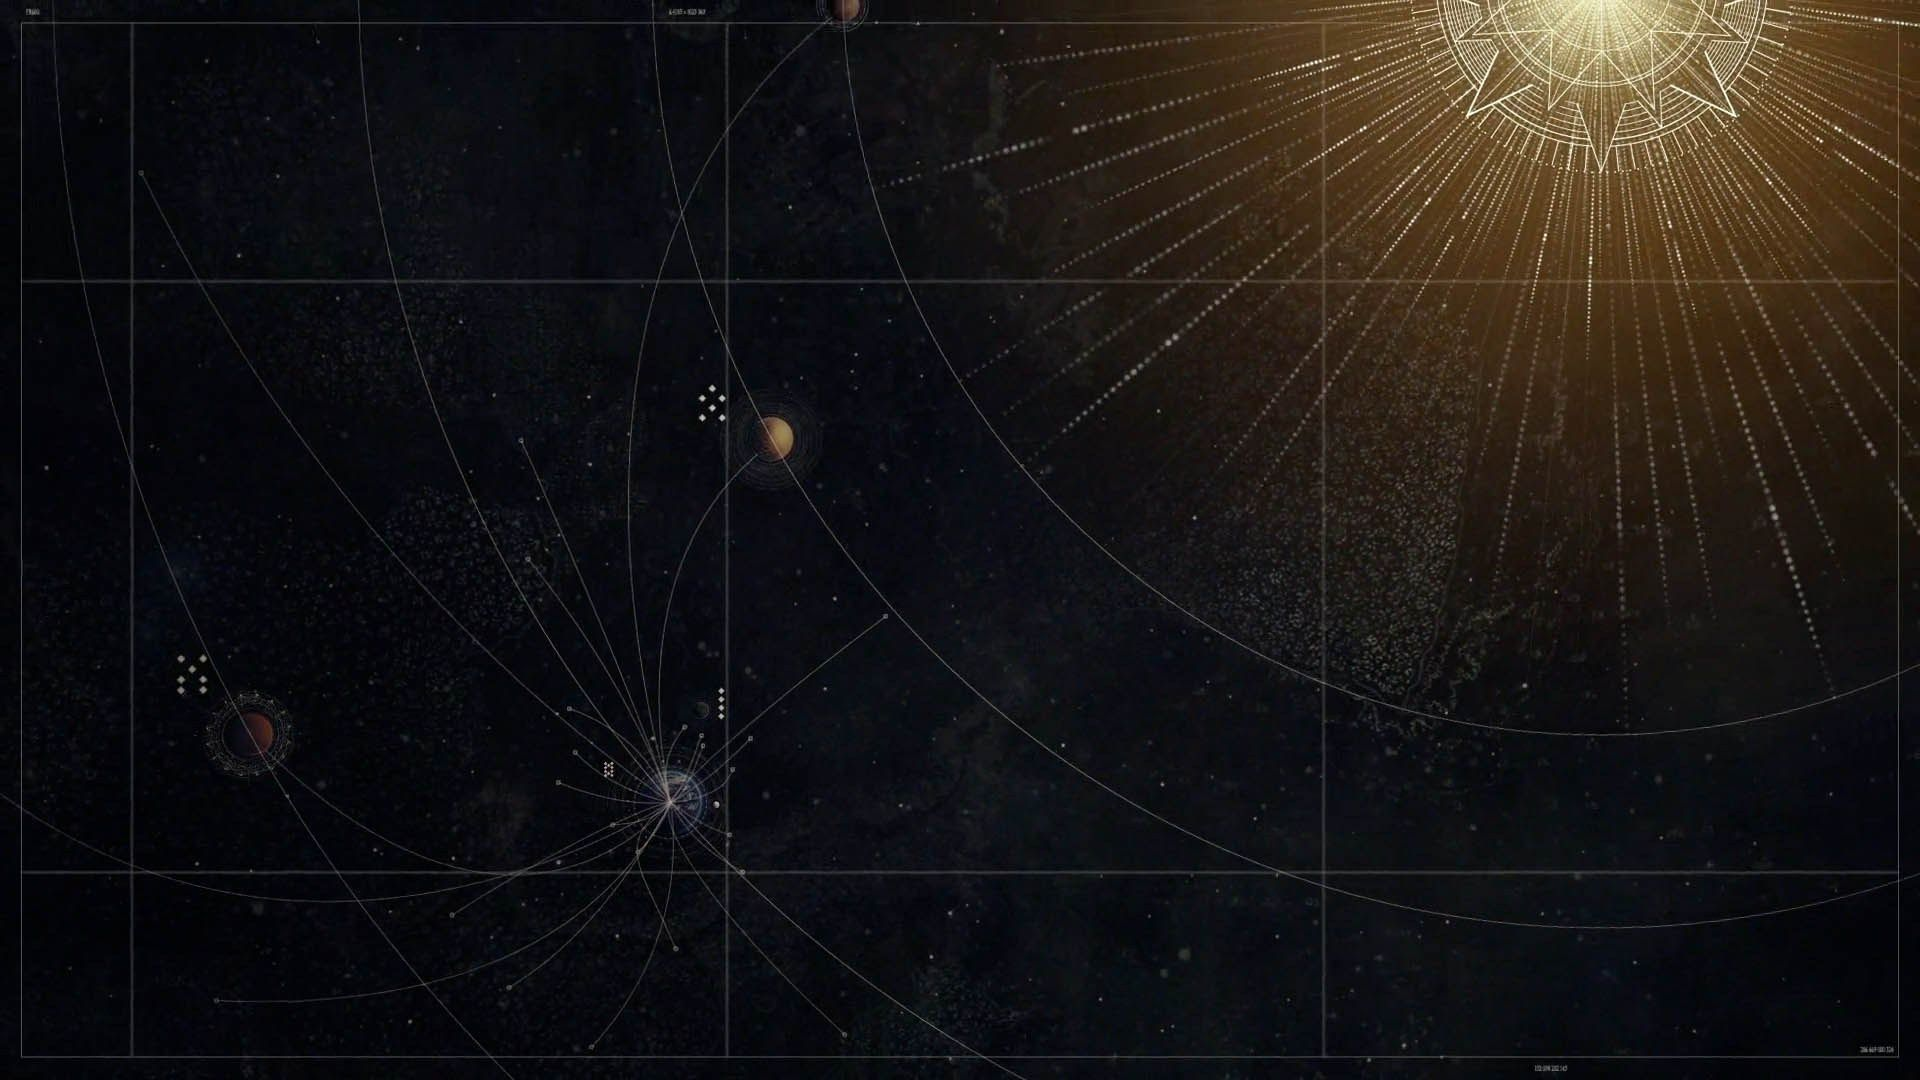 What Are The Circles Lines Surrounding The Planets In